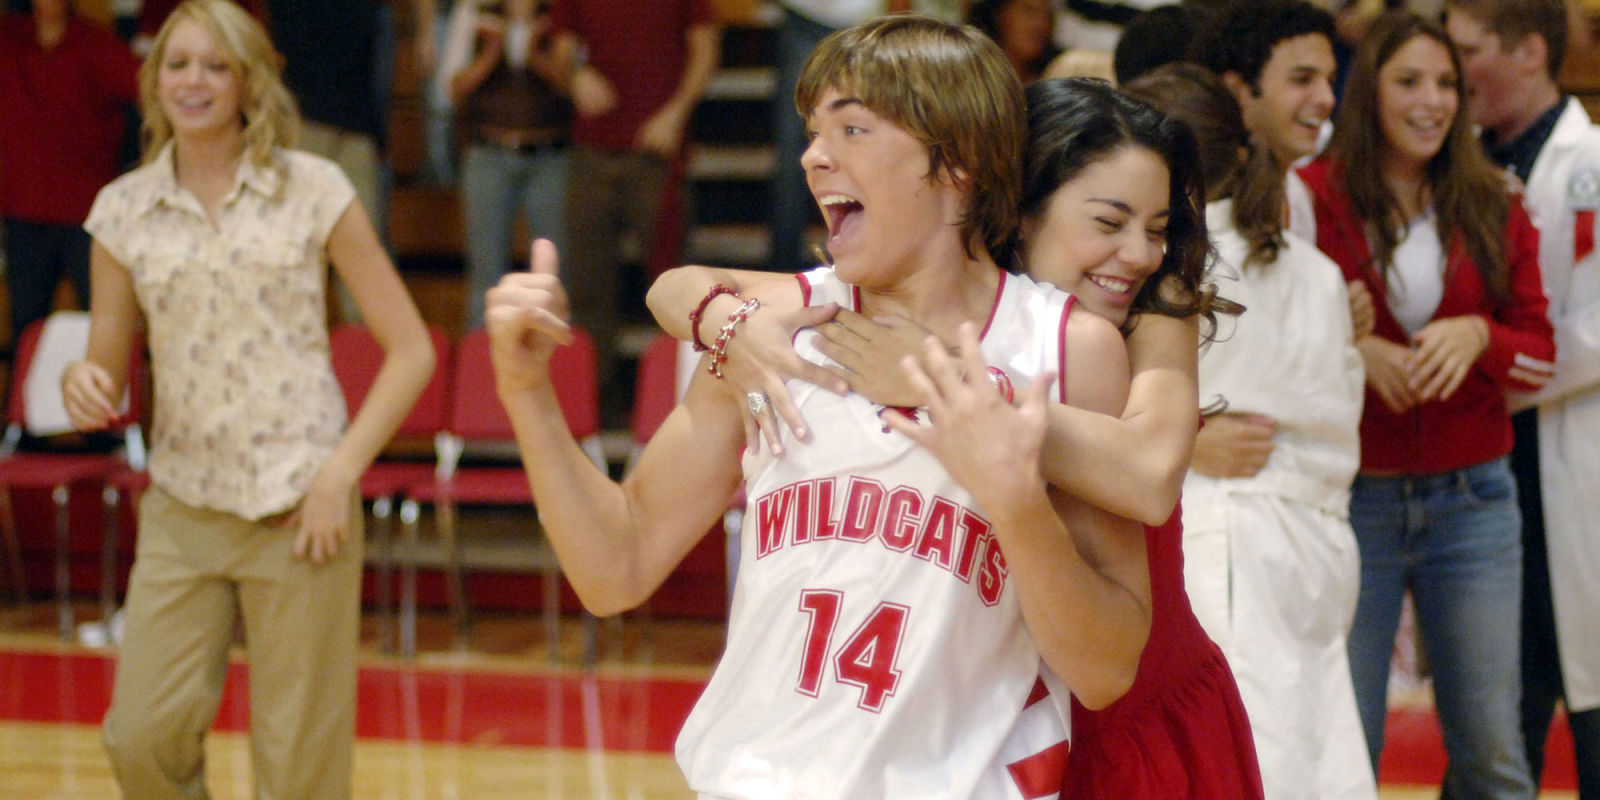 High School Musical 4 Is Being Released And We Can T Even